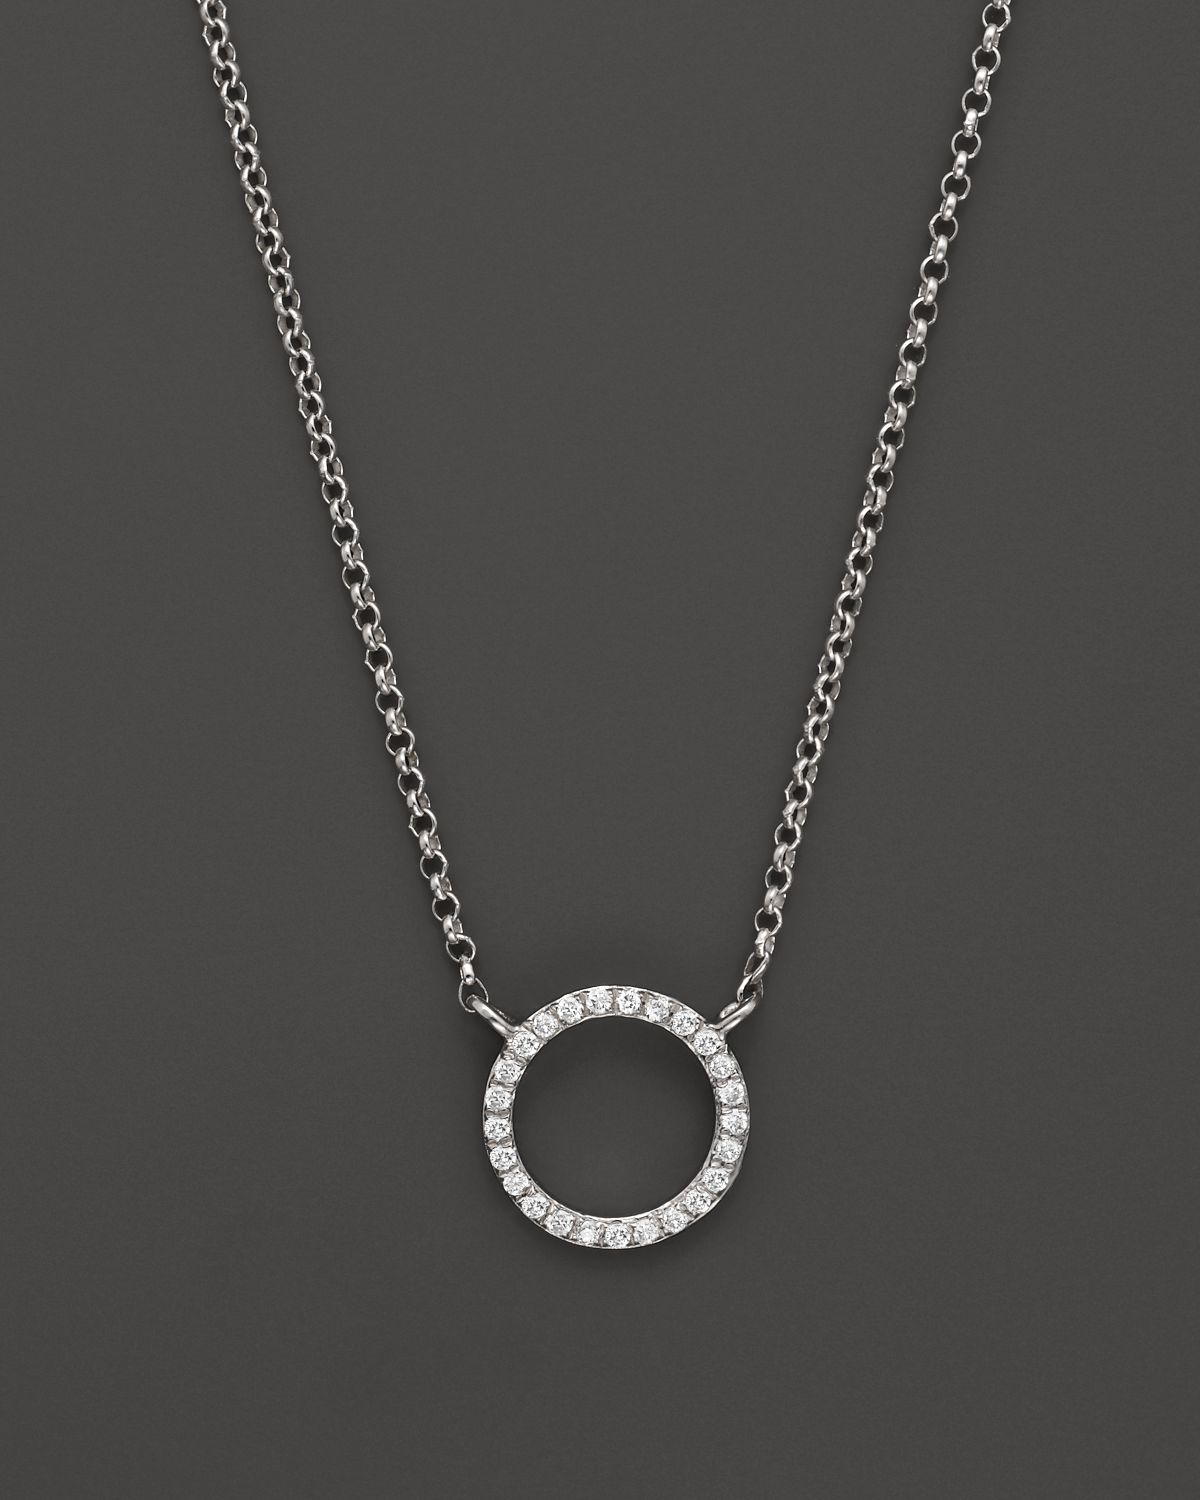 Lyst kc designs small diamond circle pendant in 14k white gold in gallery aloadofball Image collections